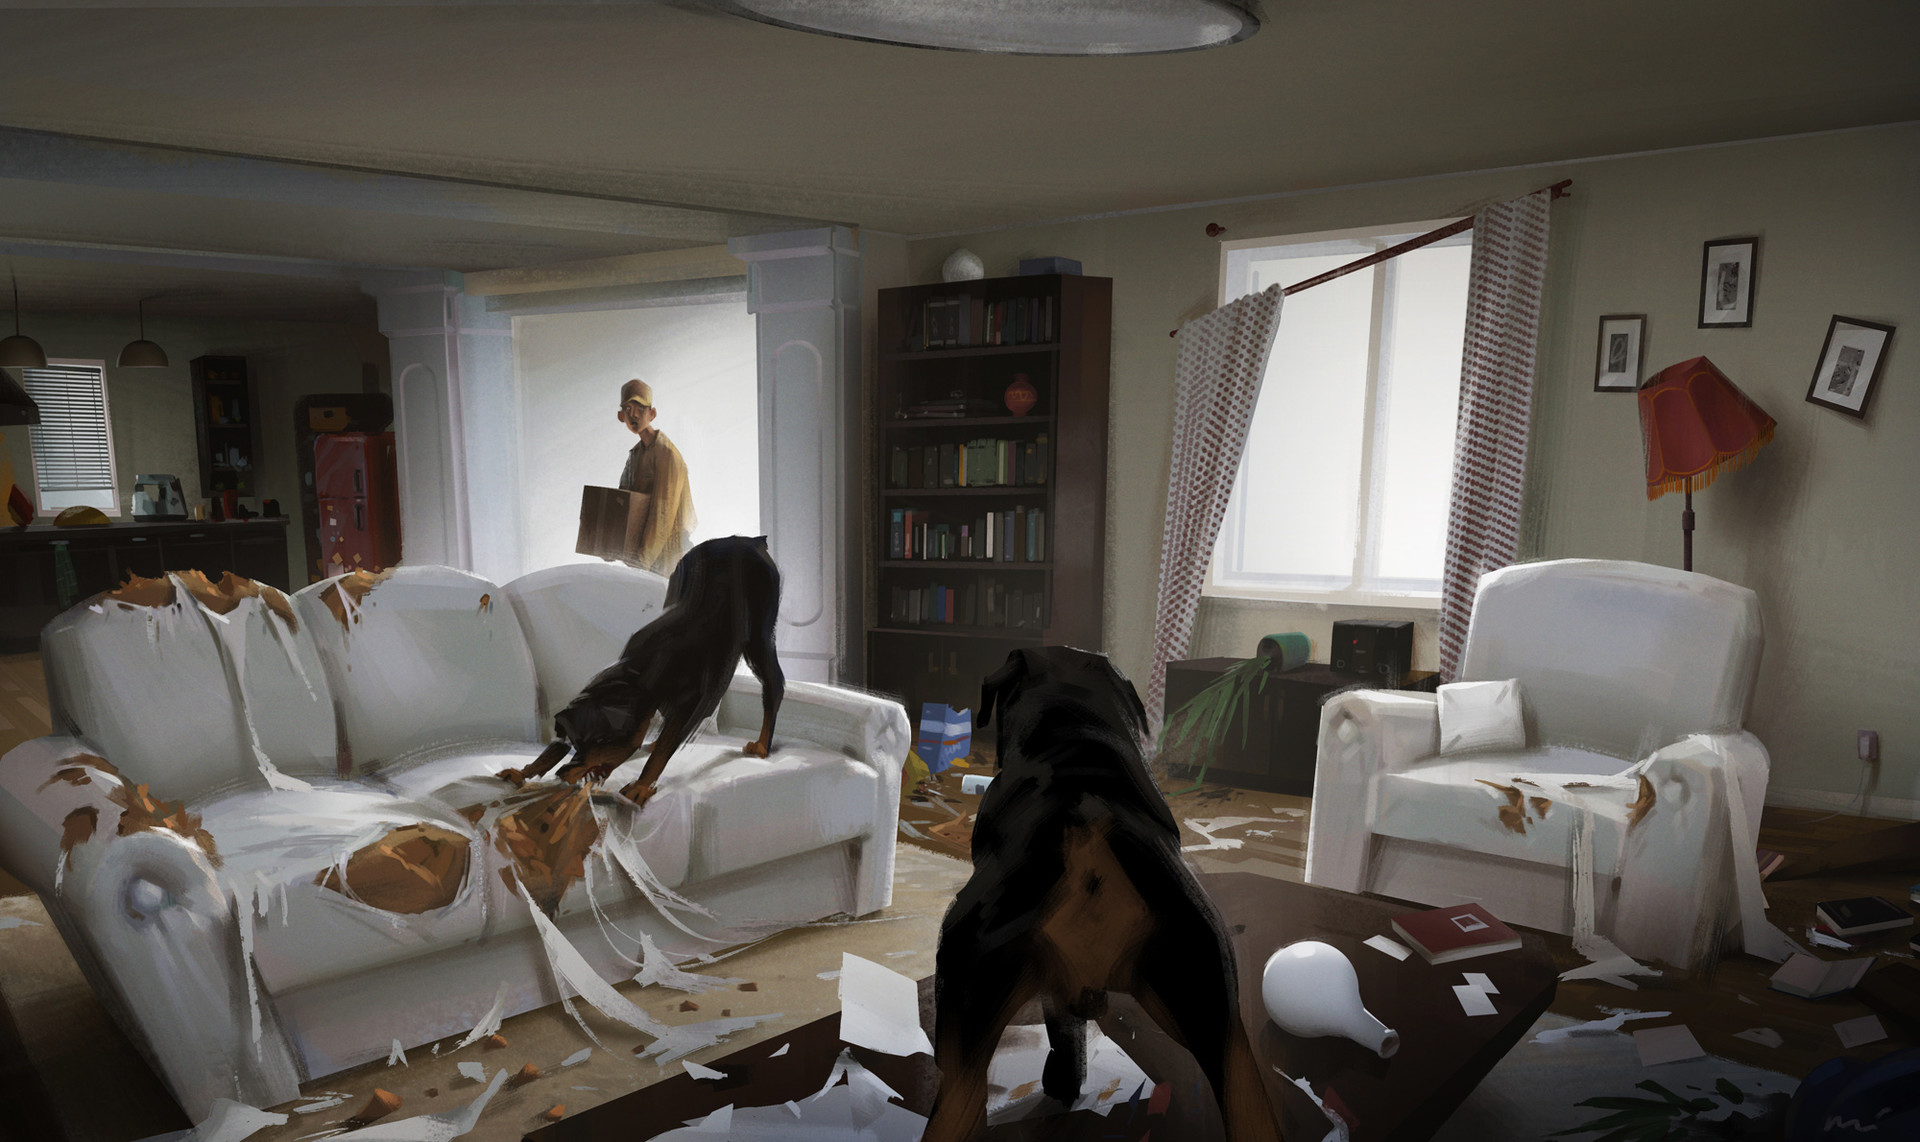 Michal lisowski untitled 1ne4daaaa